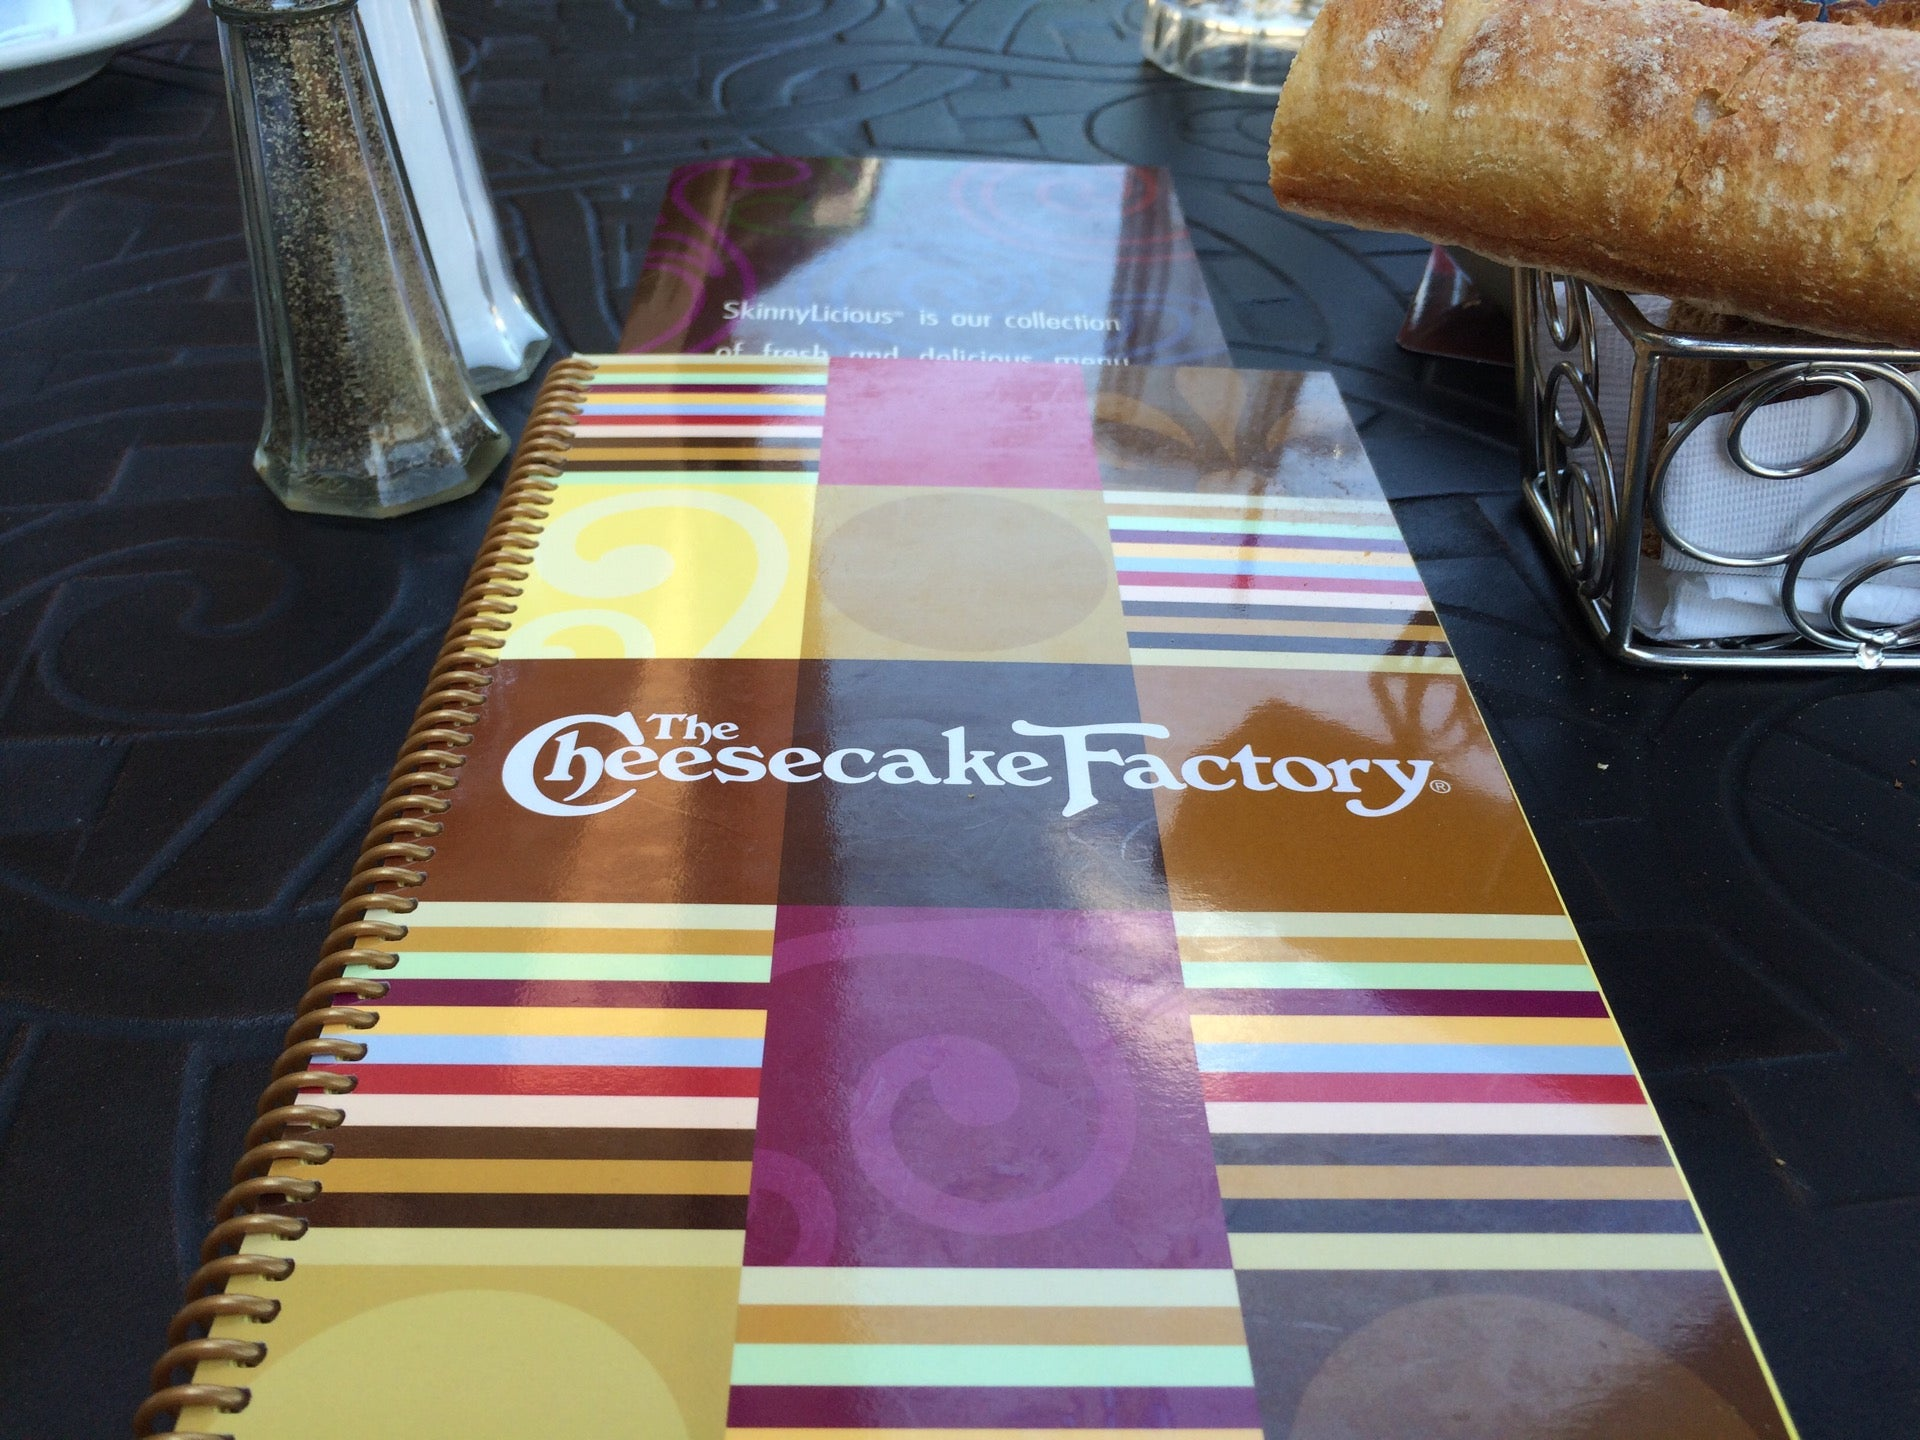 The Cheesecake Factory,